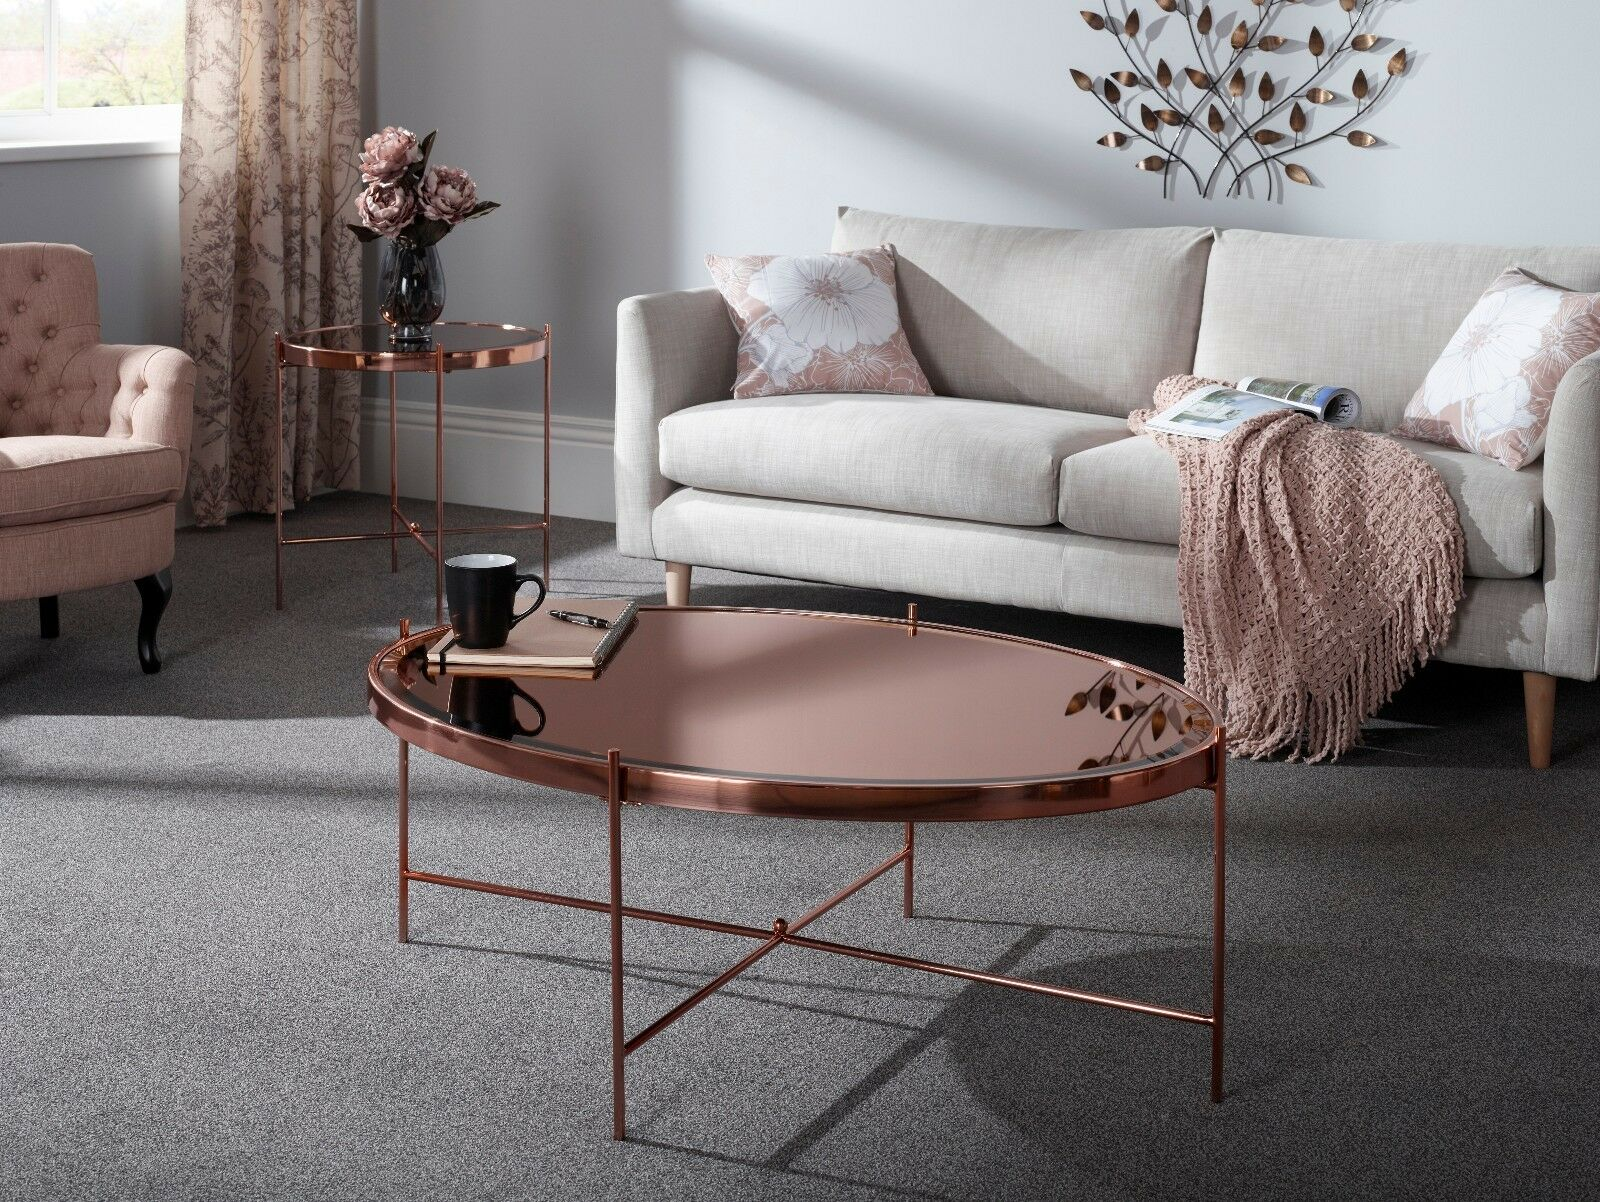 Azur Coffee Table Oval Shape in Rose Gold Metal Base & Mirror